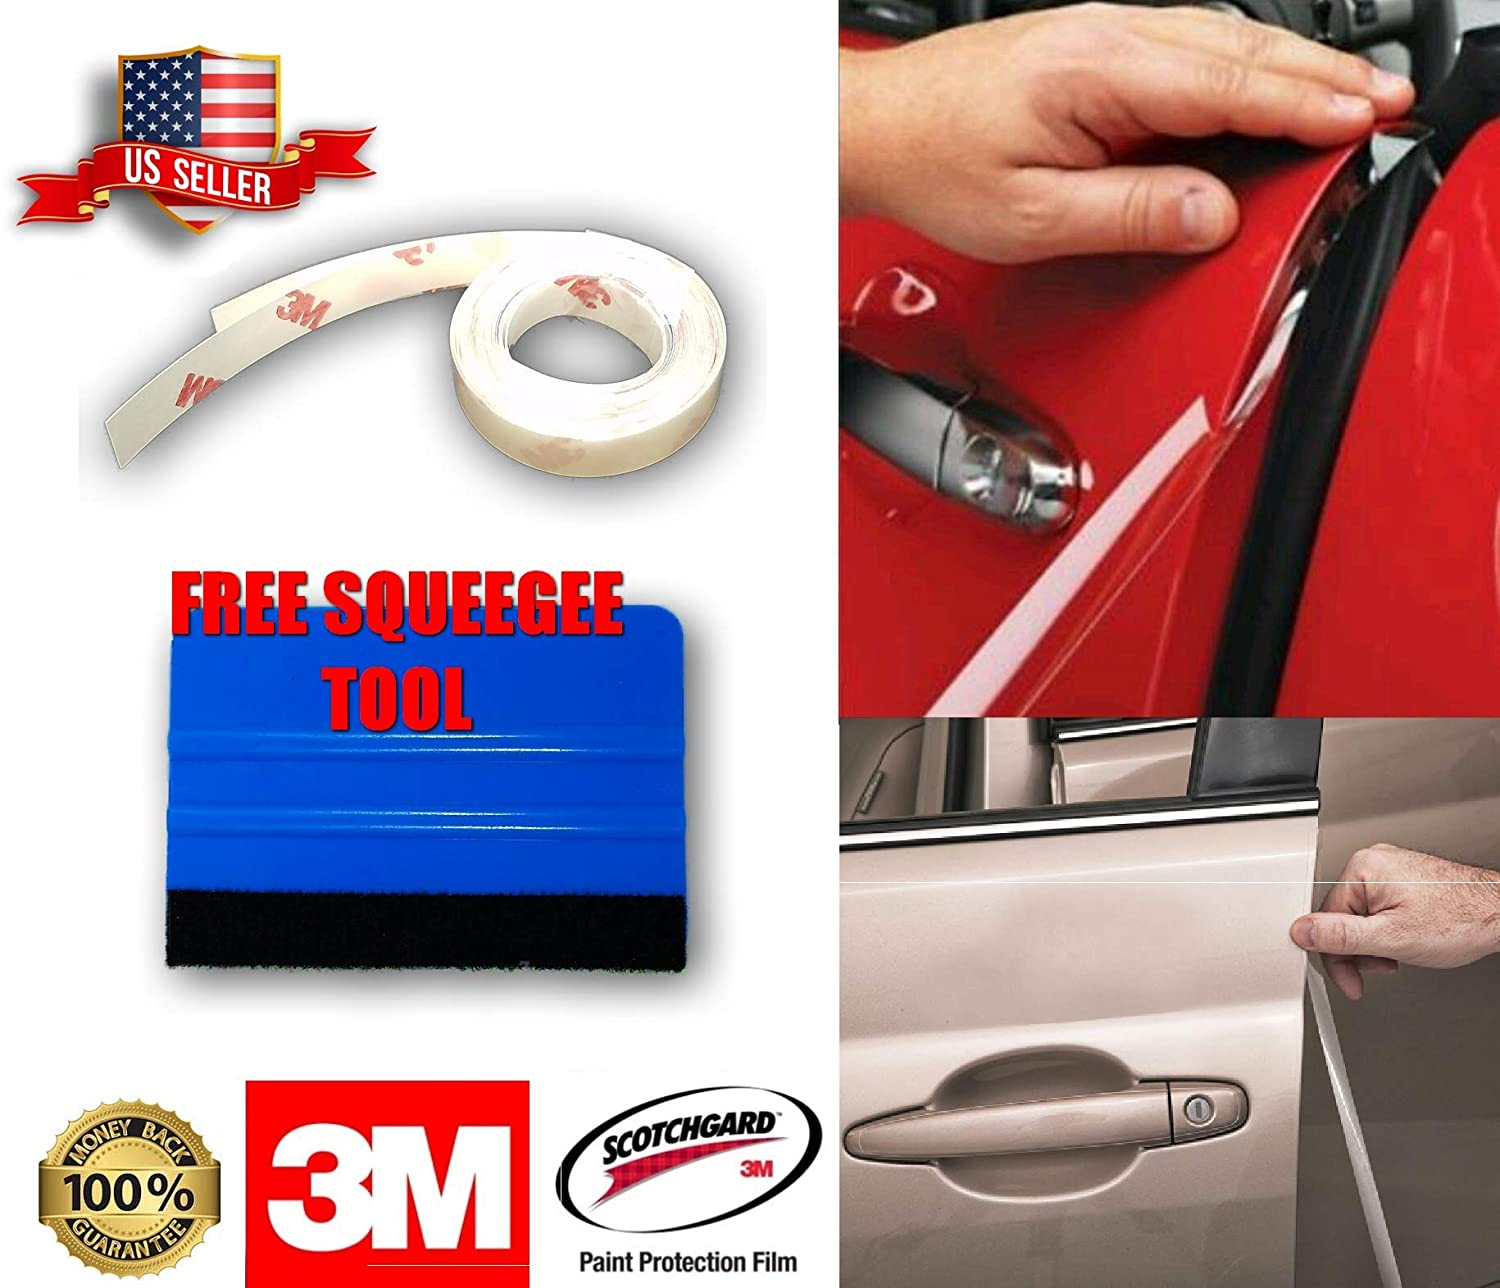 2 Door Edge Guard Scratch 3M Scotchgard Protection Film Clear Invisible Universal Car Truck REPACKAGE